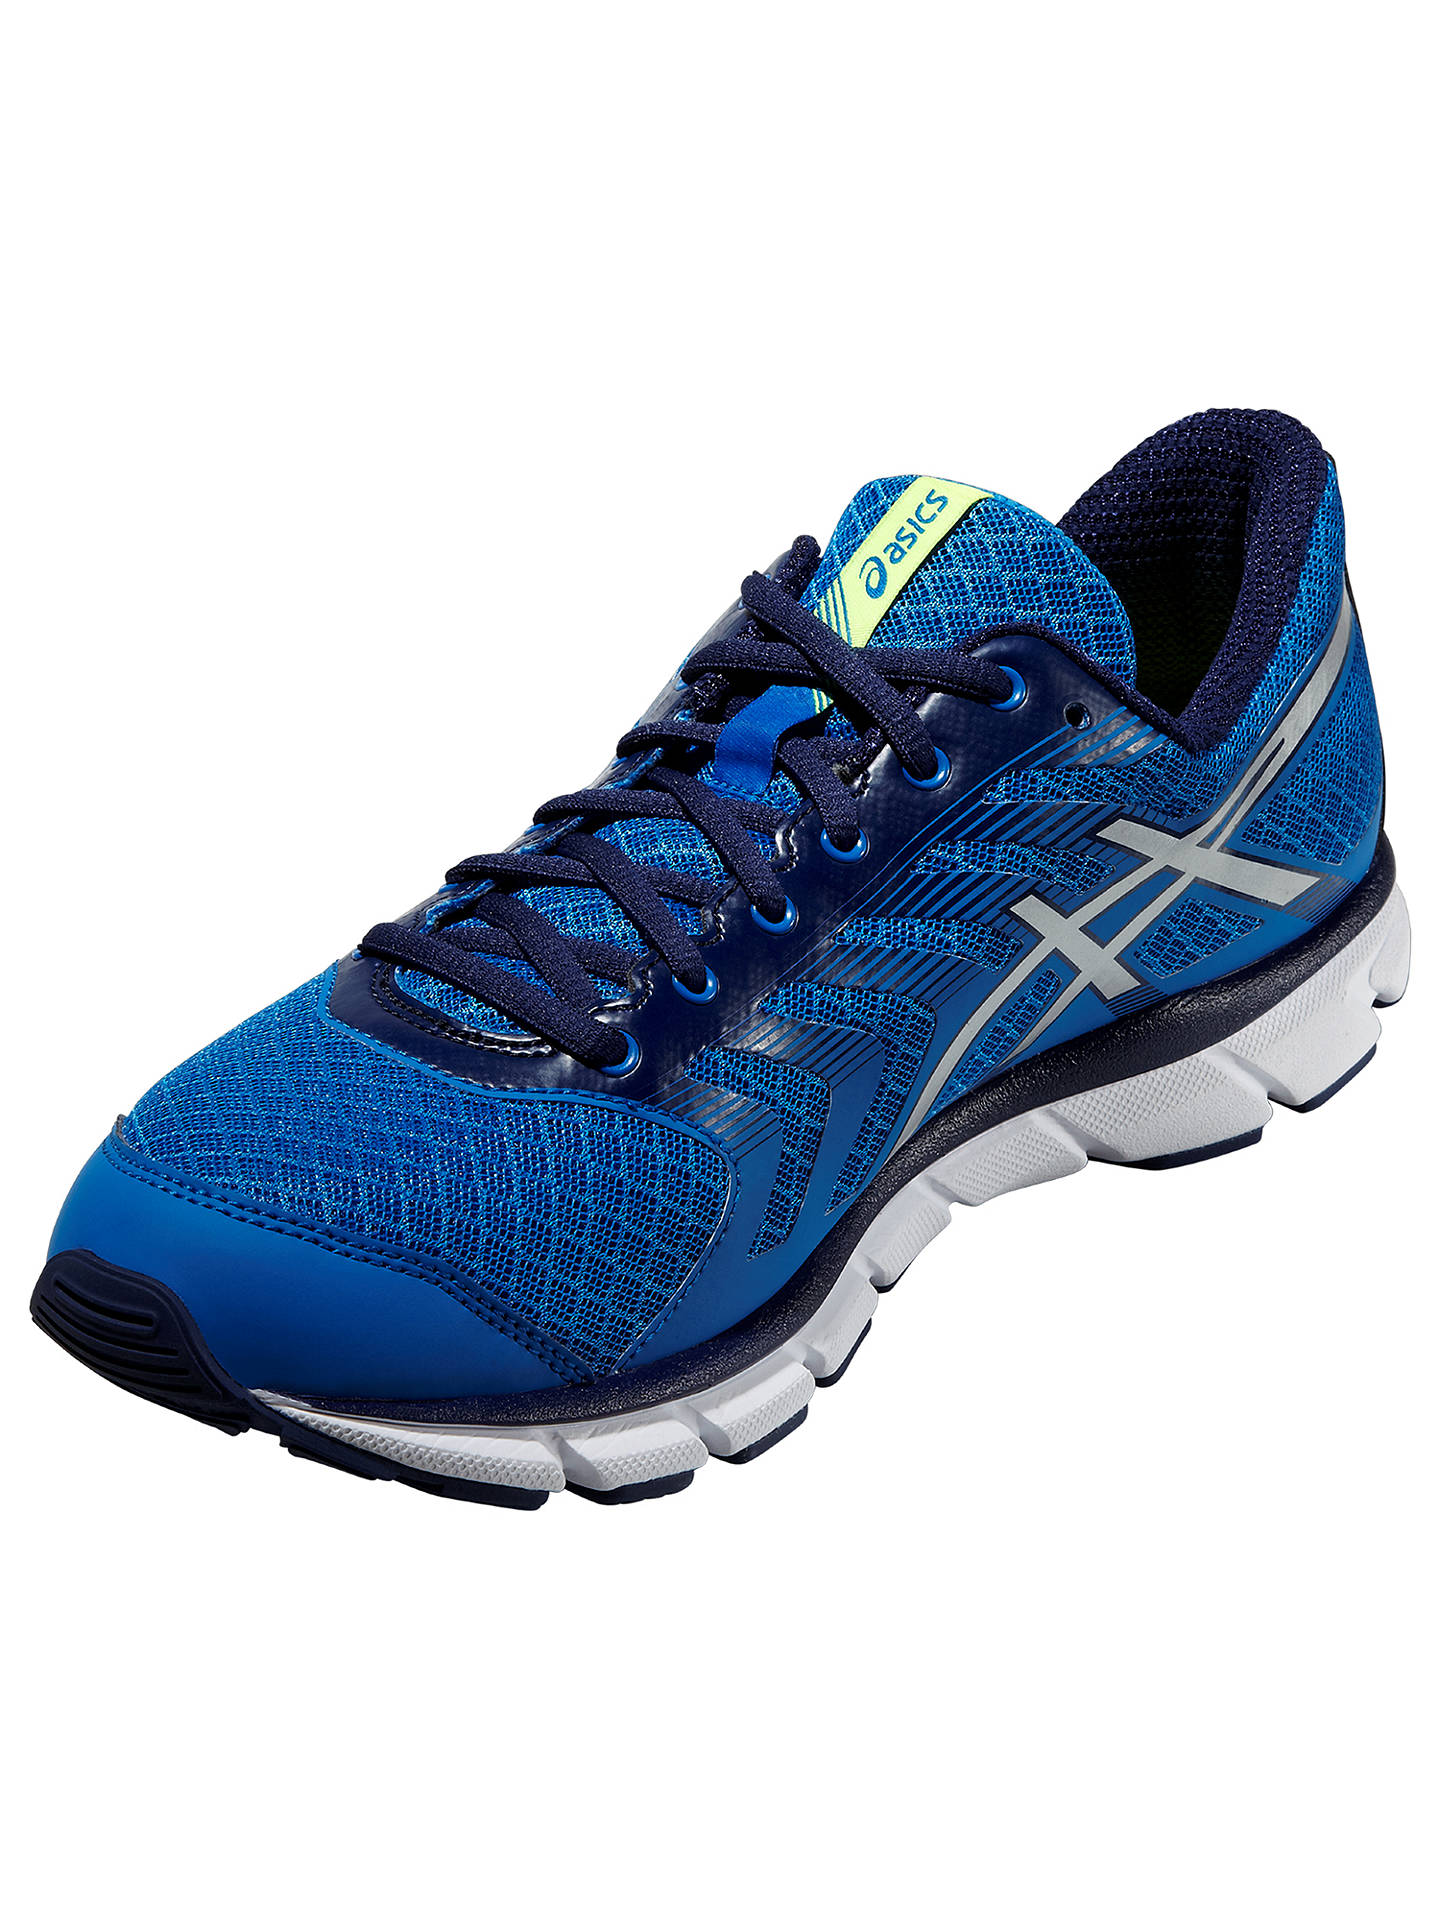 premium selection de170 81a03 Asics Gel-Xalion 3 Men's Natural Running Shoes, Electric ...